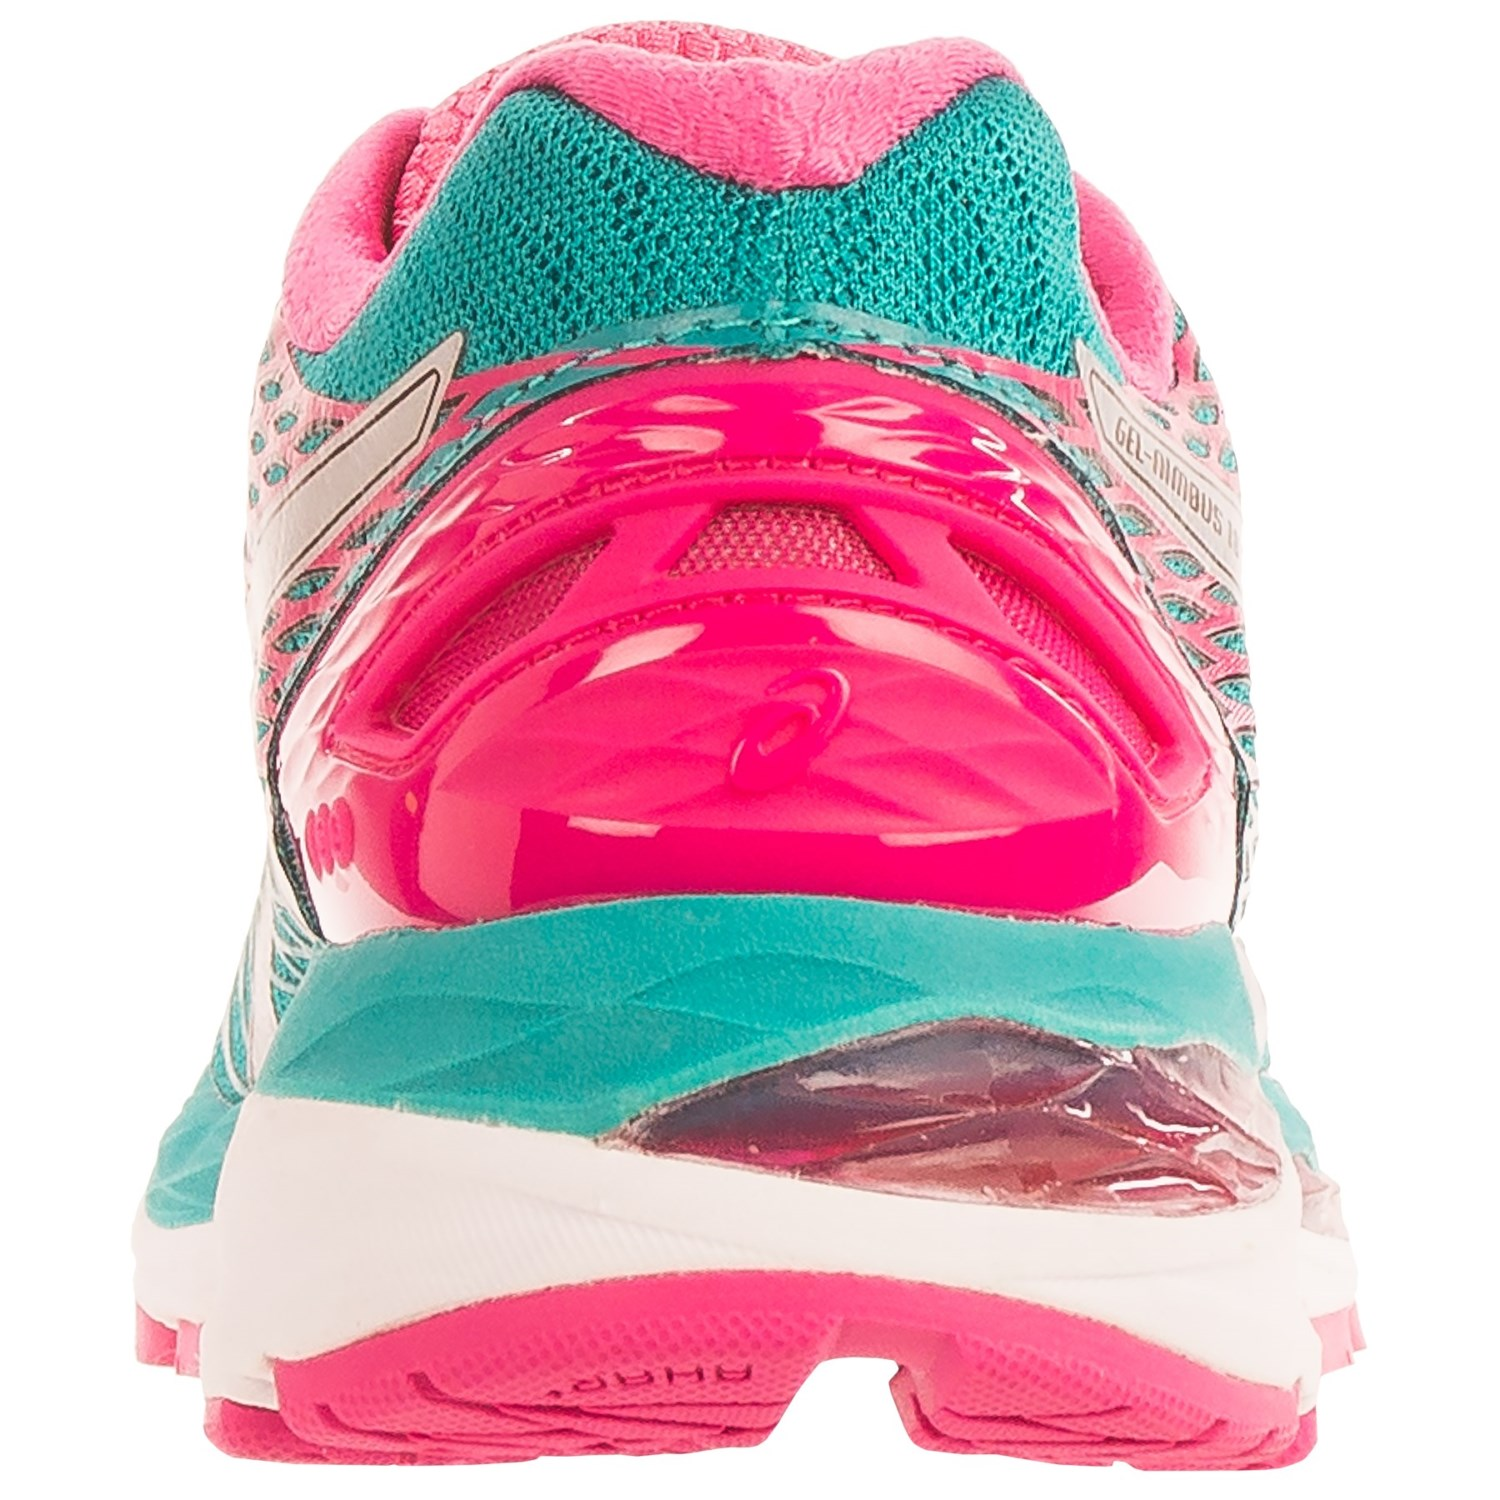 ASICS GEL-Nimbus 18 Running Shoes (For Women) - Save 40%